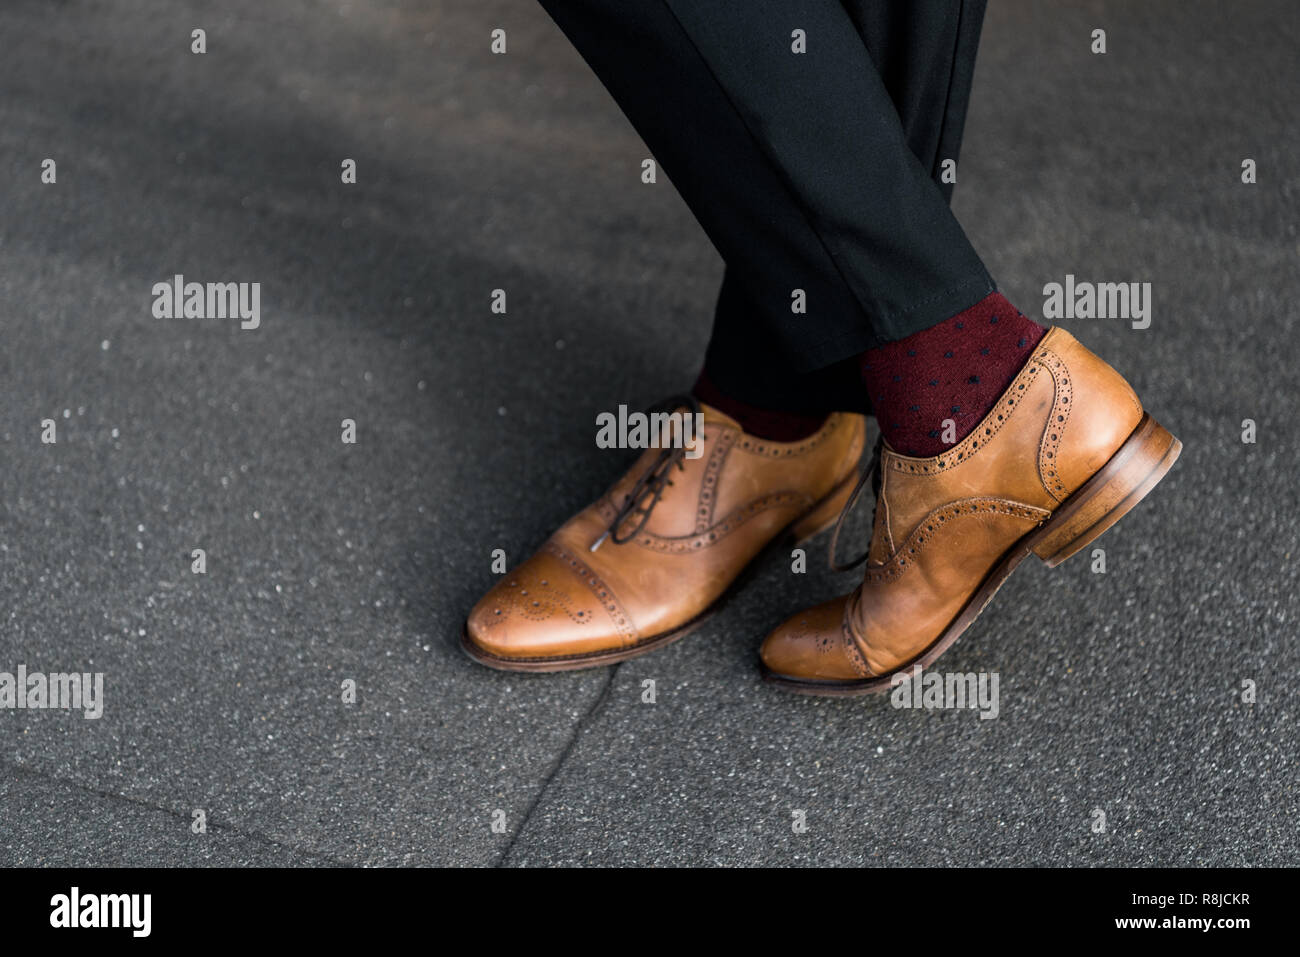 cropped view of male crossed legs in burgundy socks and oxford shoes - Stock Image